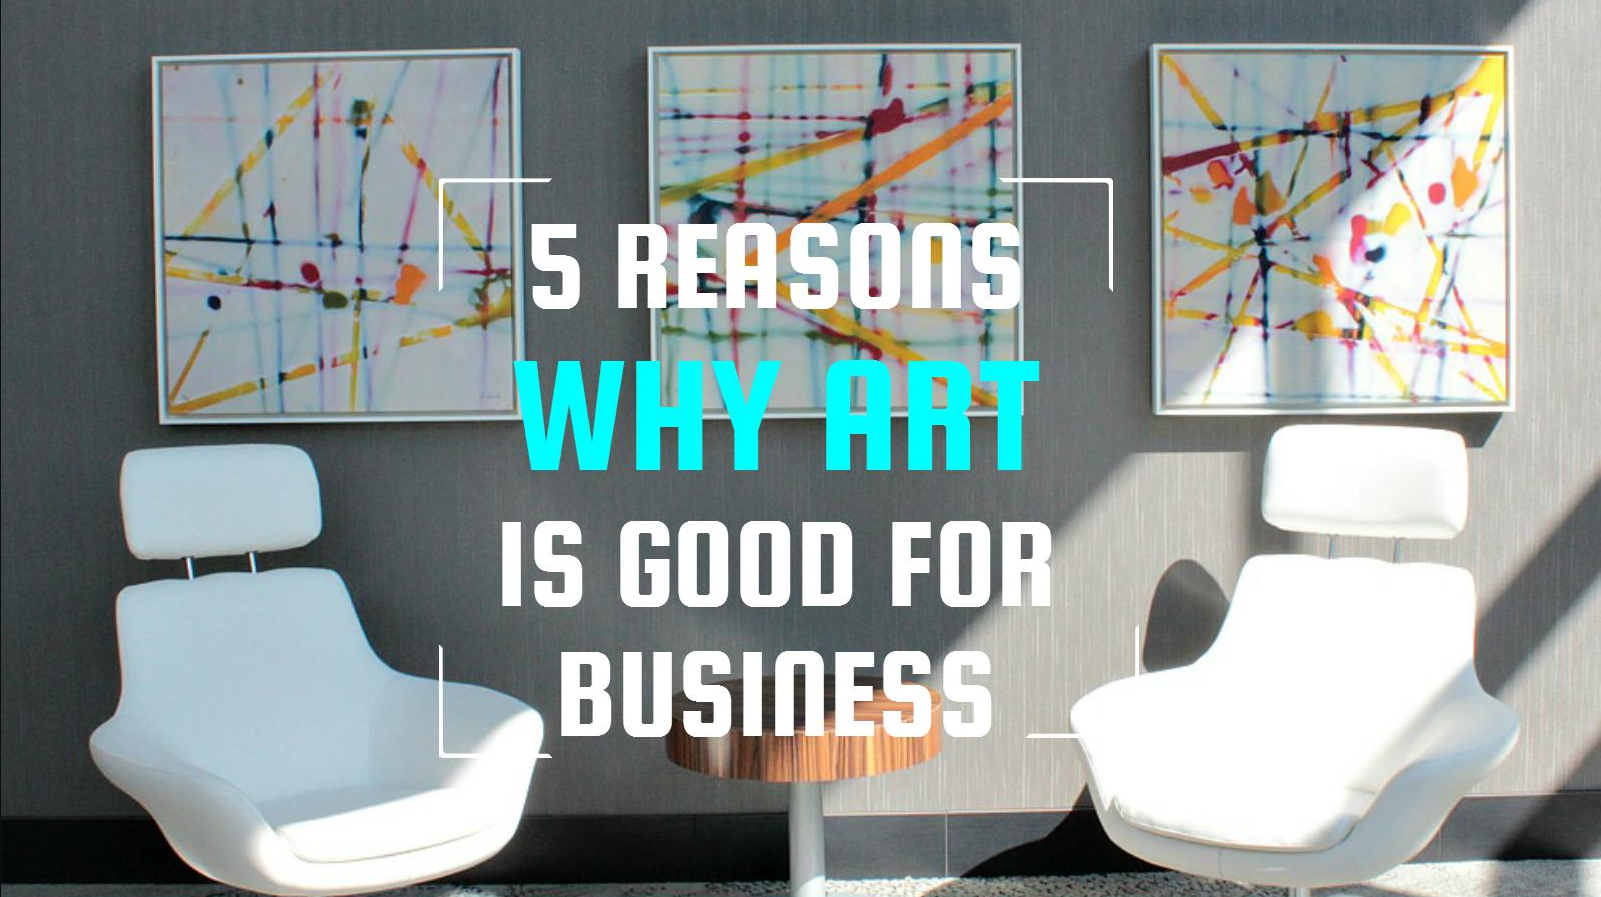 Why Is Art Important 5 Reasons Why Art Is Good For Business